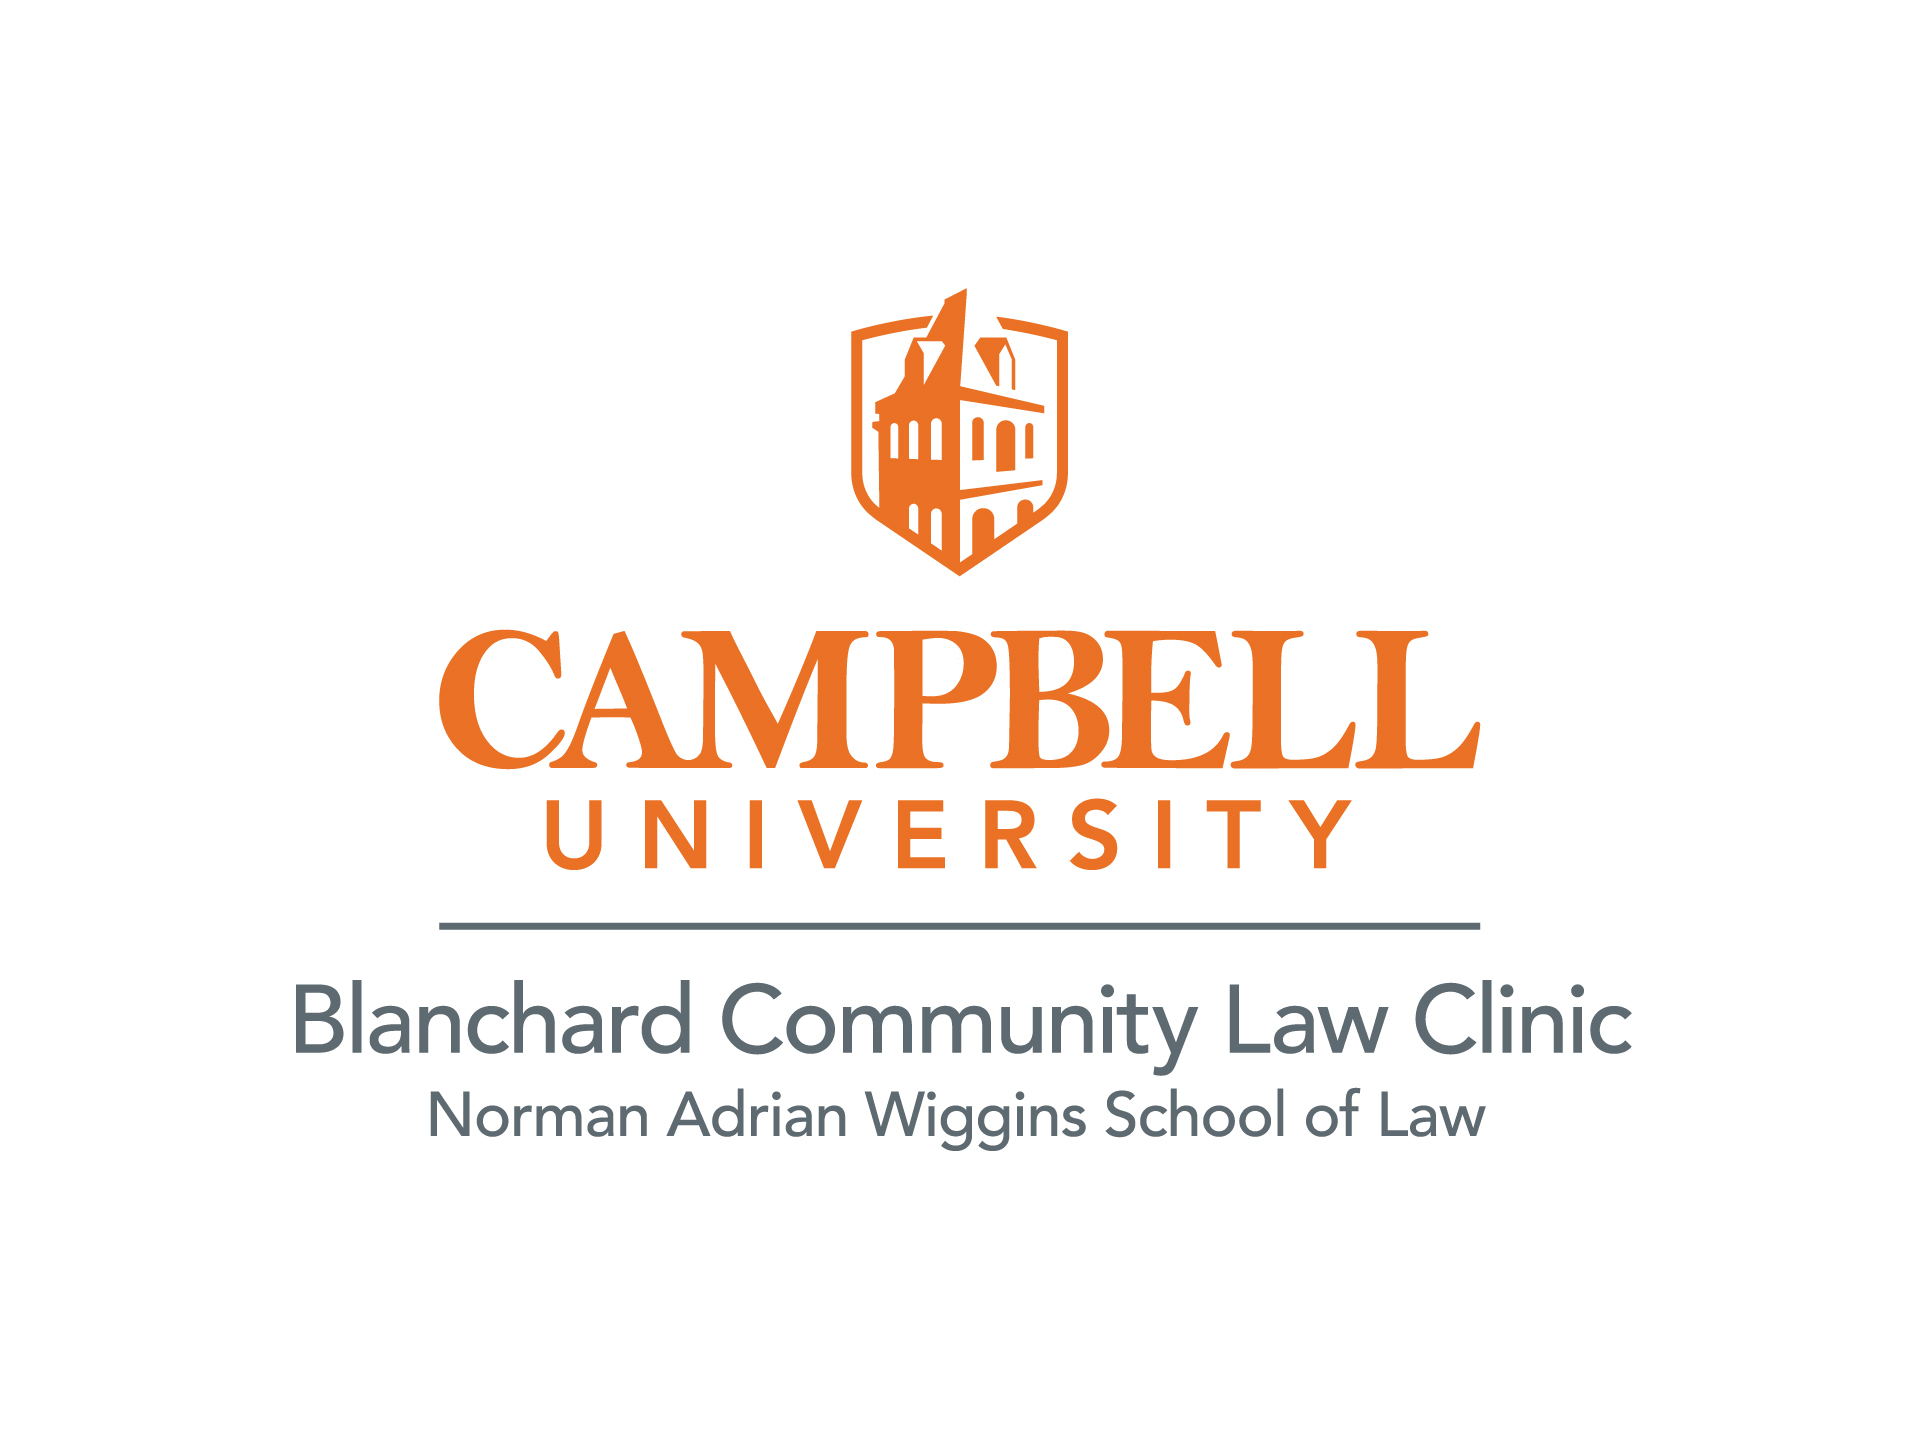 Law-Blanchard-Community-Law-Clinic_Center-Align-Screen.jpg